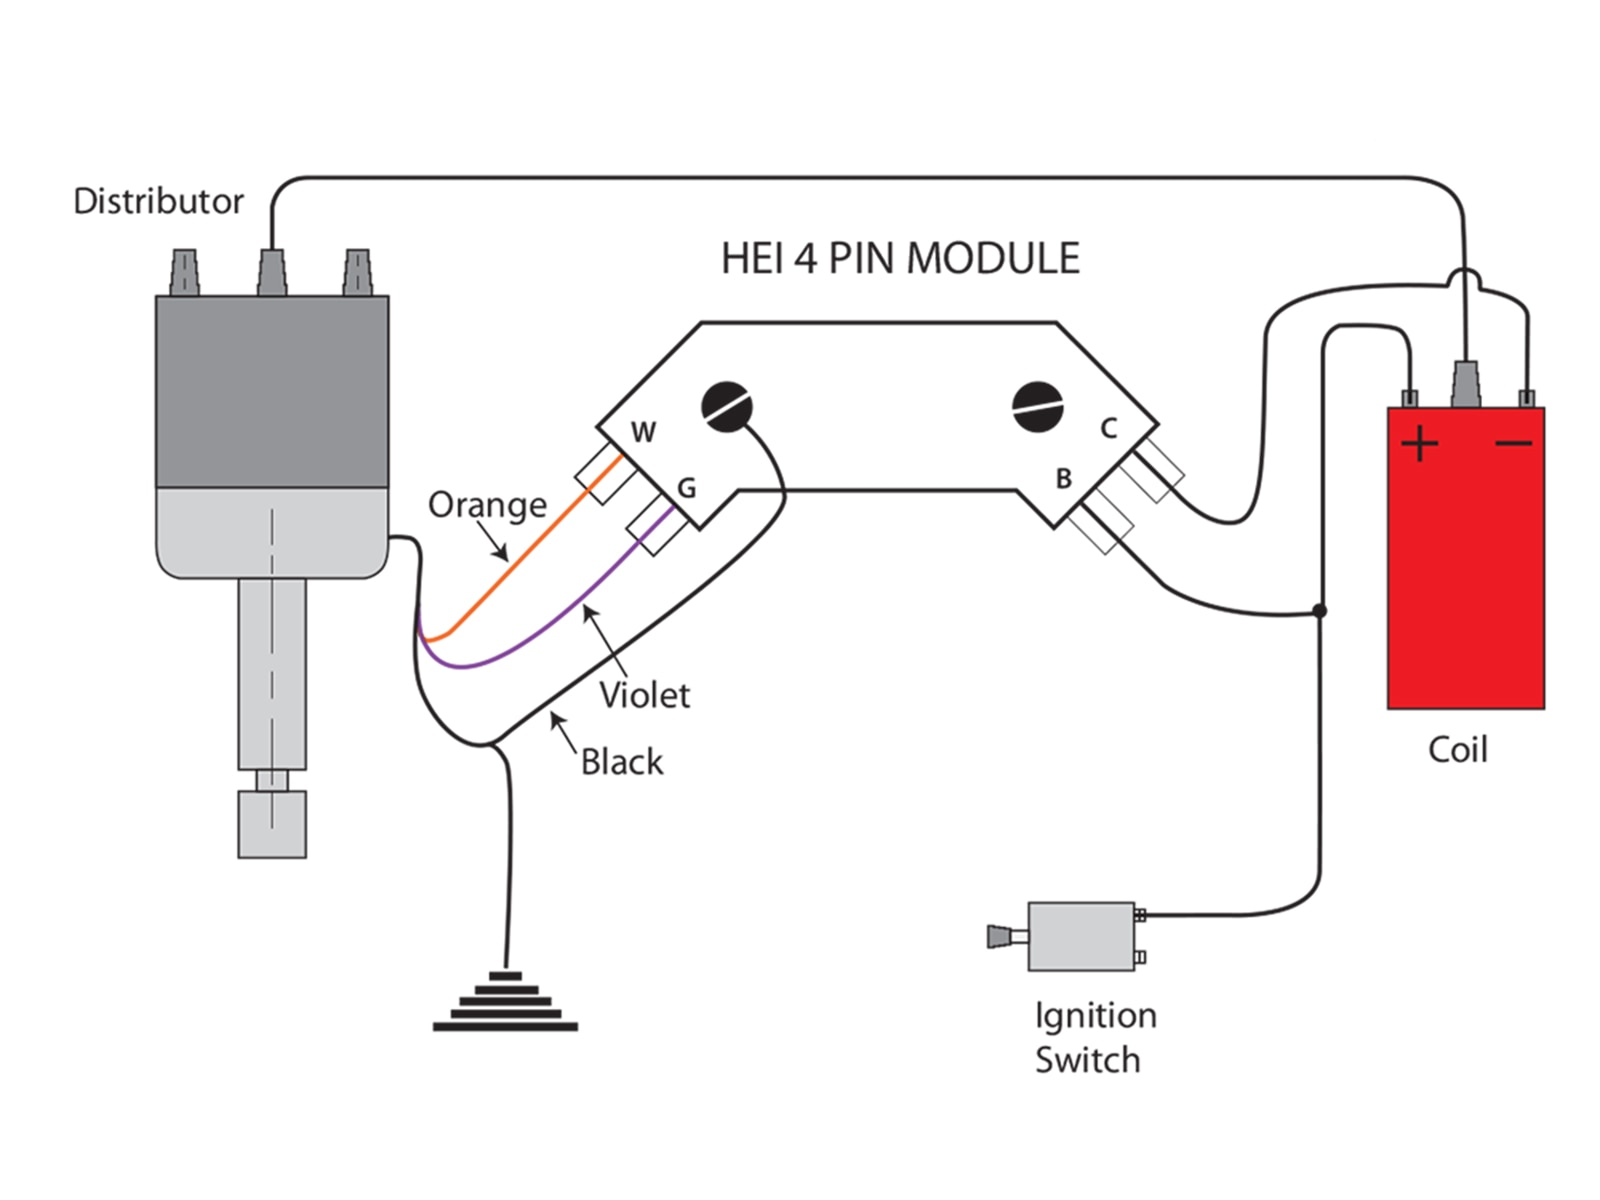 Gm Hei Wiring Harness On Gm Pdf Images Electrical Engine And